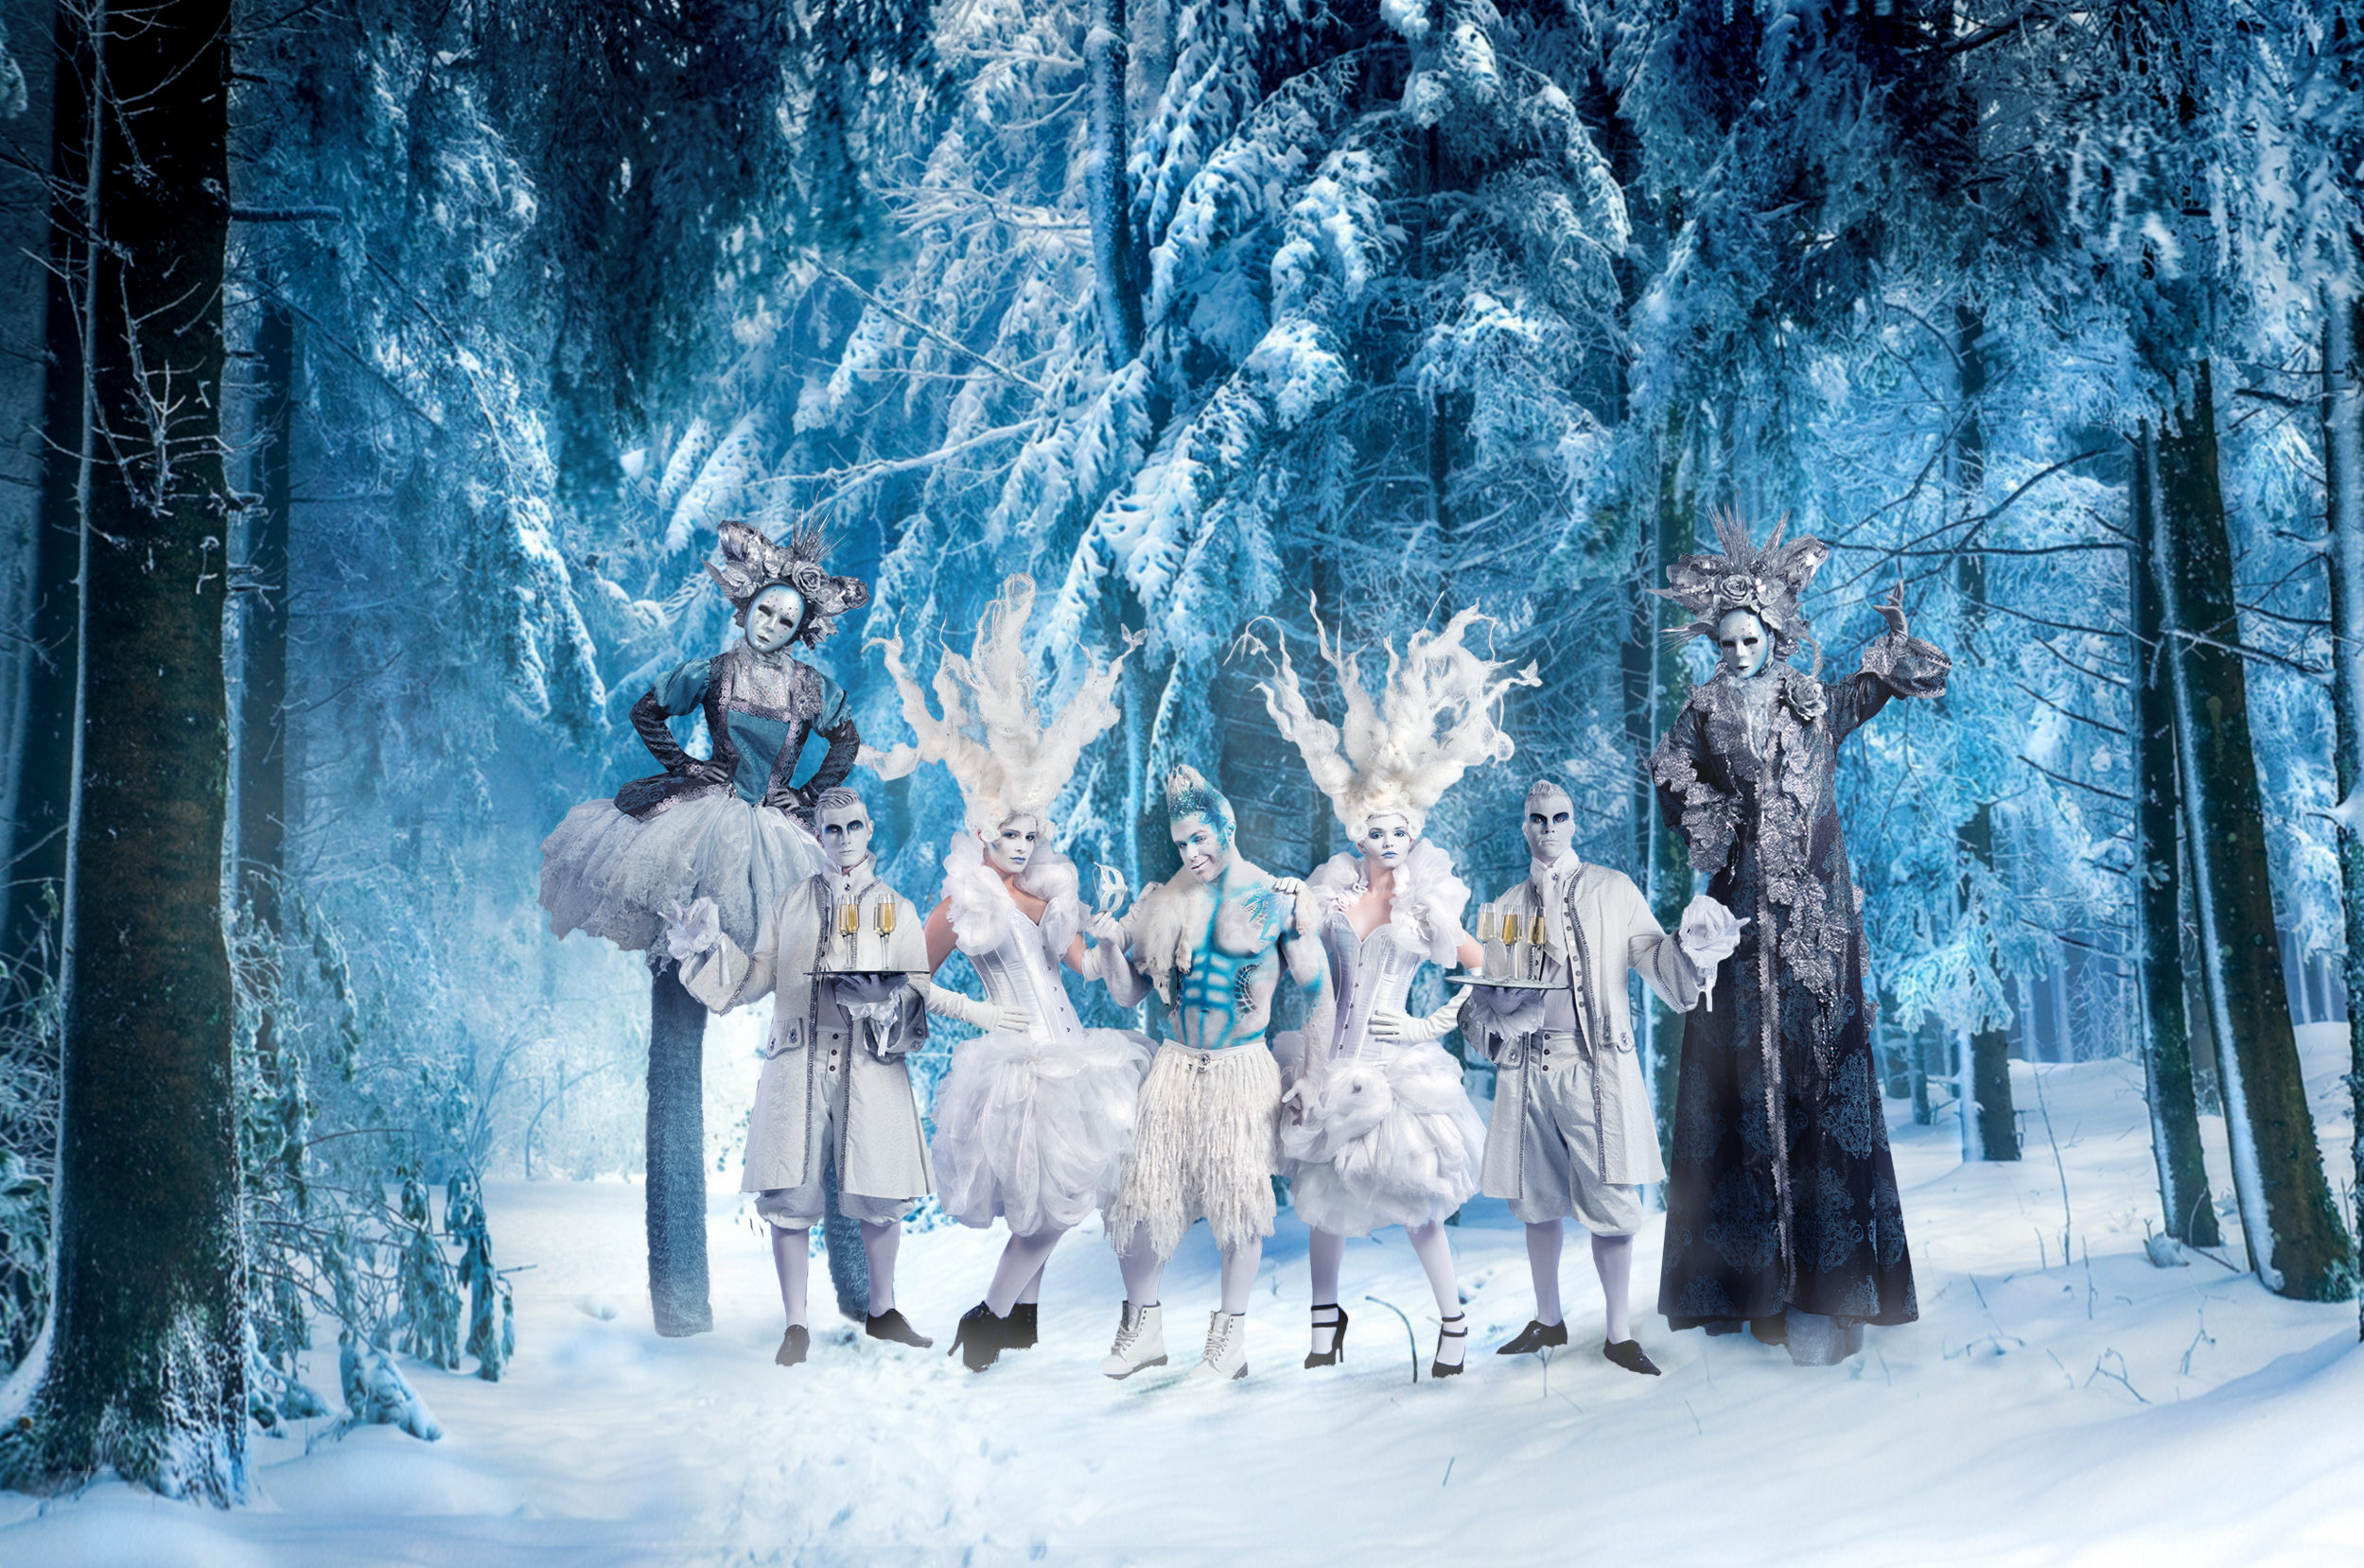 Winter Wonderland Christmas Entertainment by Neil Hughes Productions 2499x1658